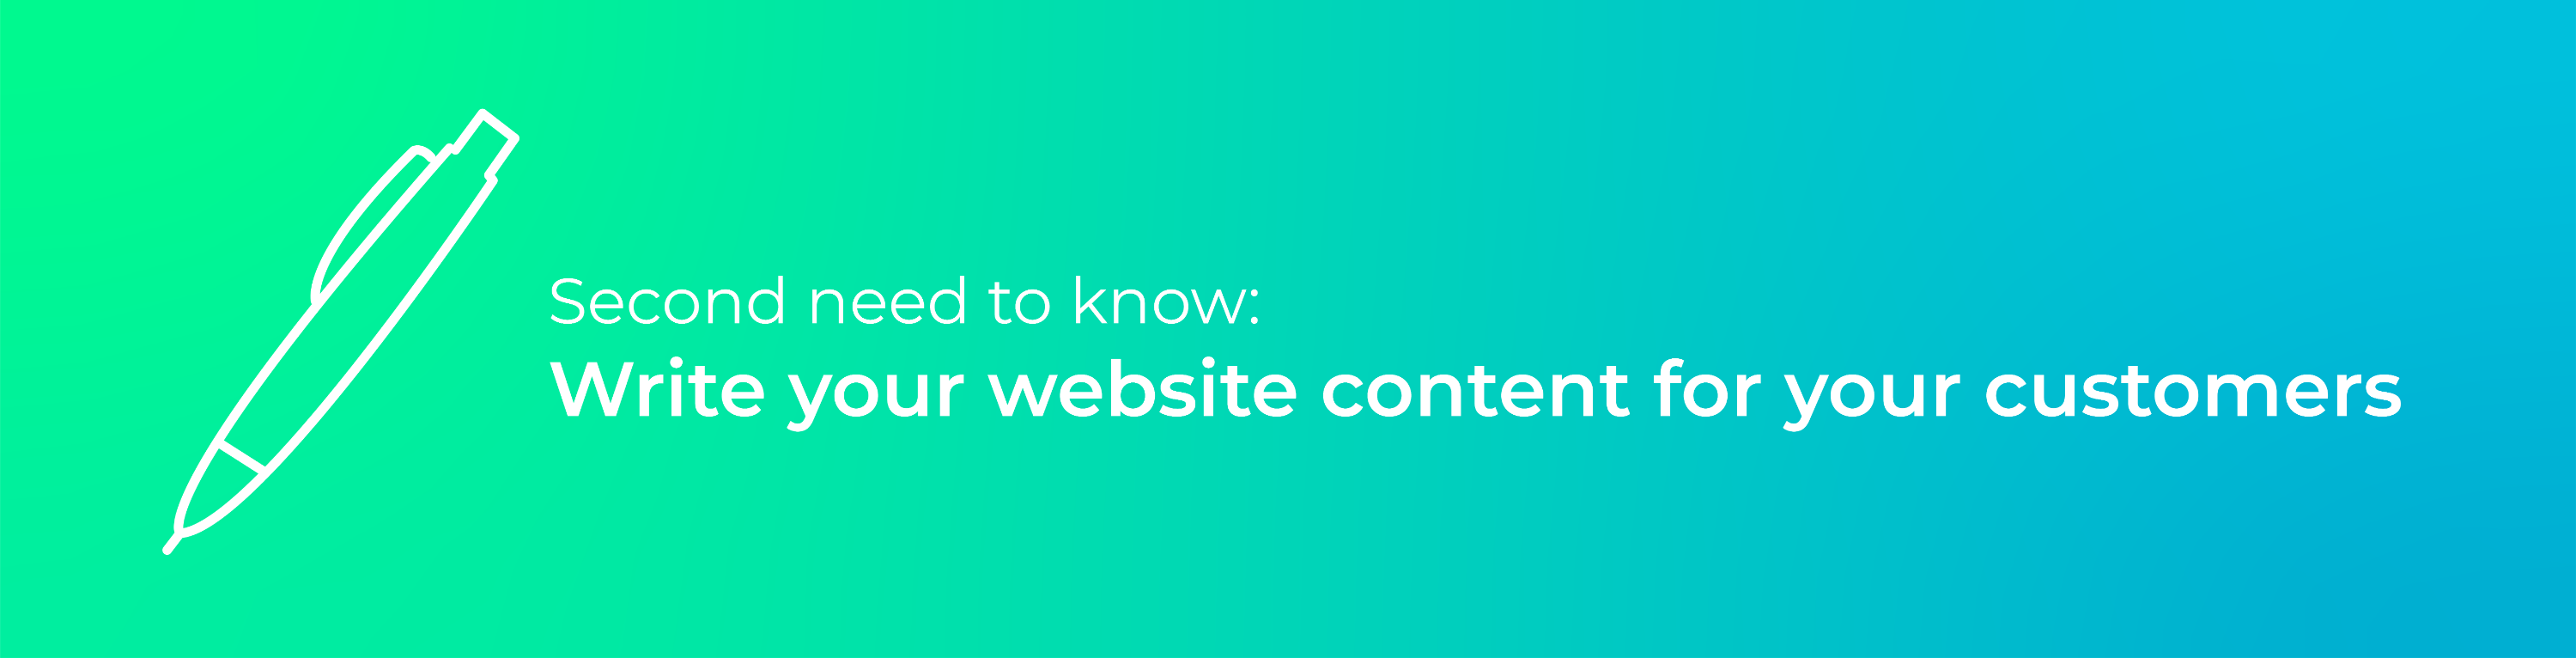 Second need to know - website content